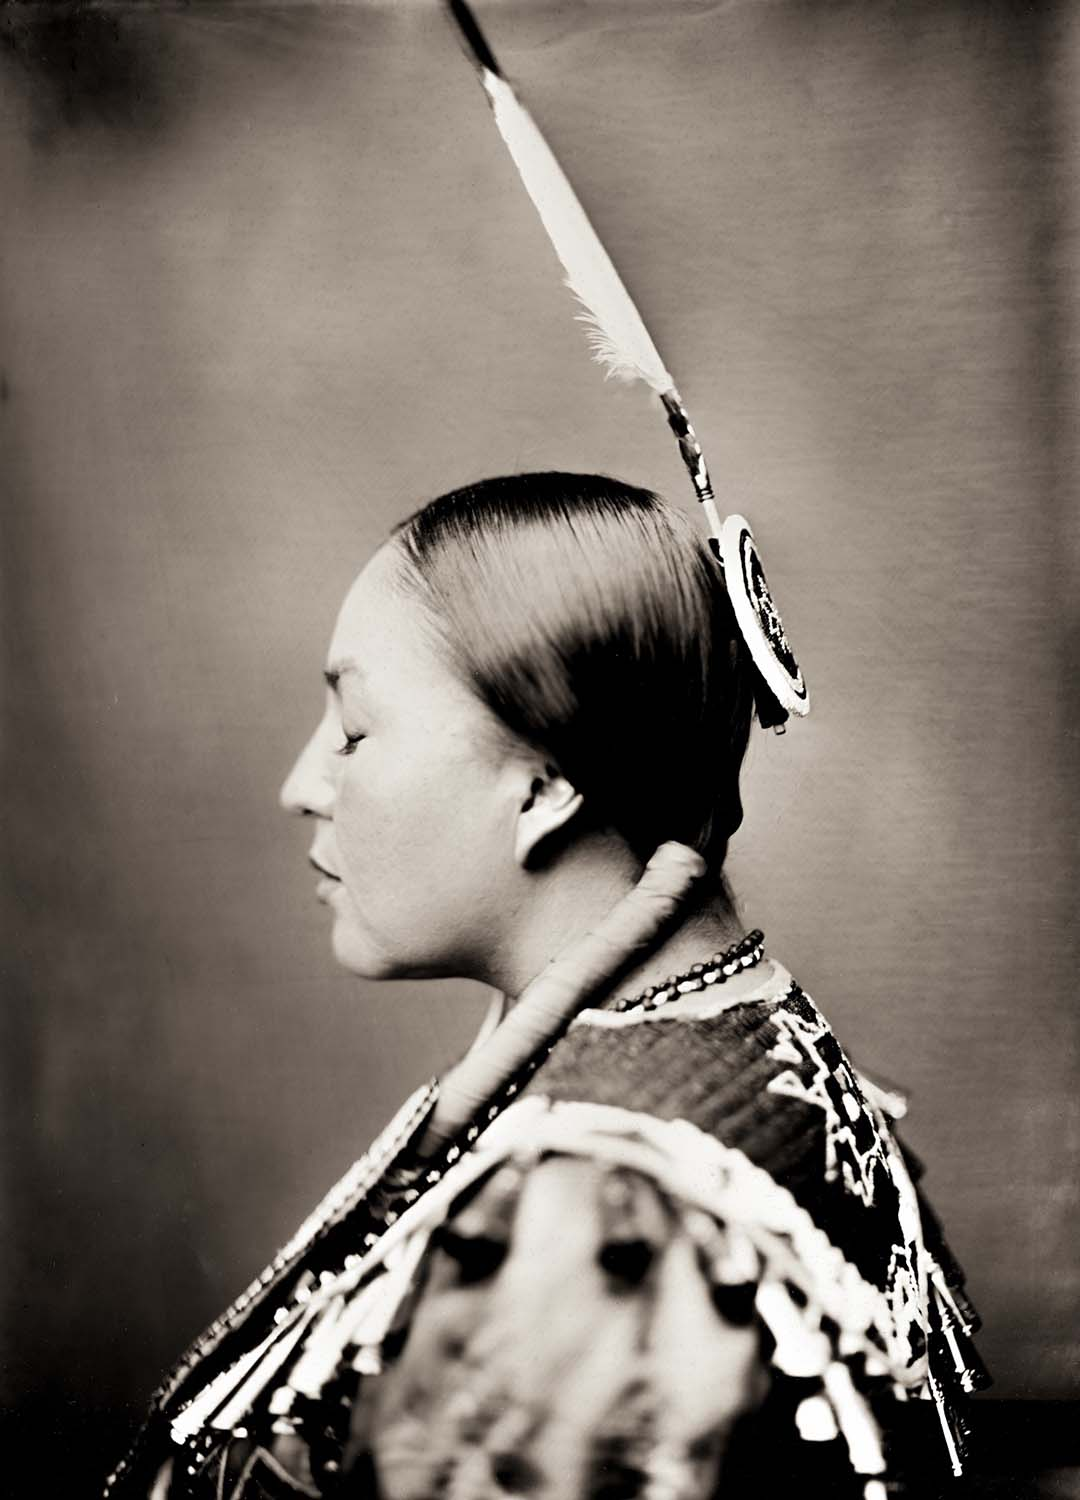 Sacred Flying Eagle Woman By: Shane Balkowitsch  http://sharoncol.balkowitsch.com/wetplate.htm